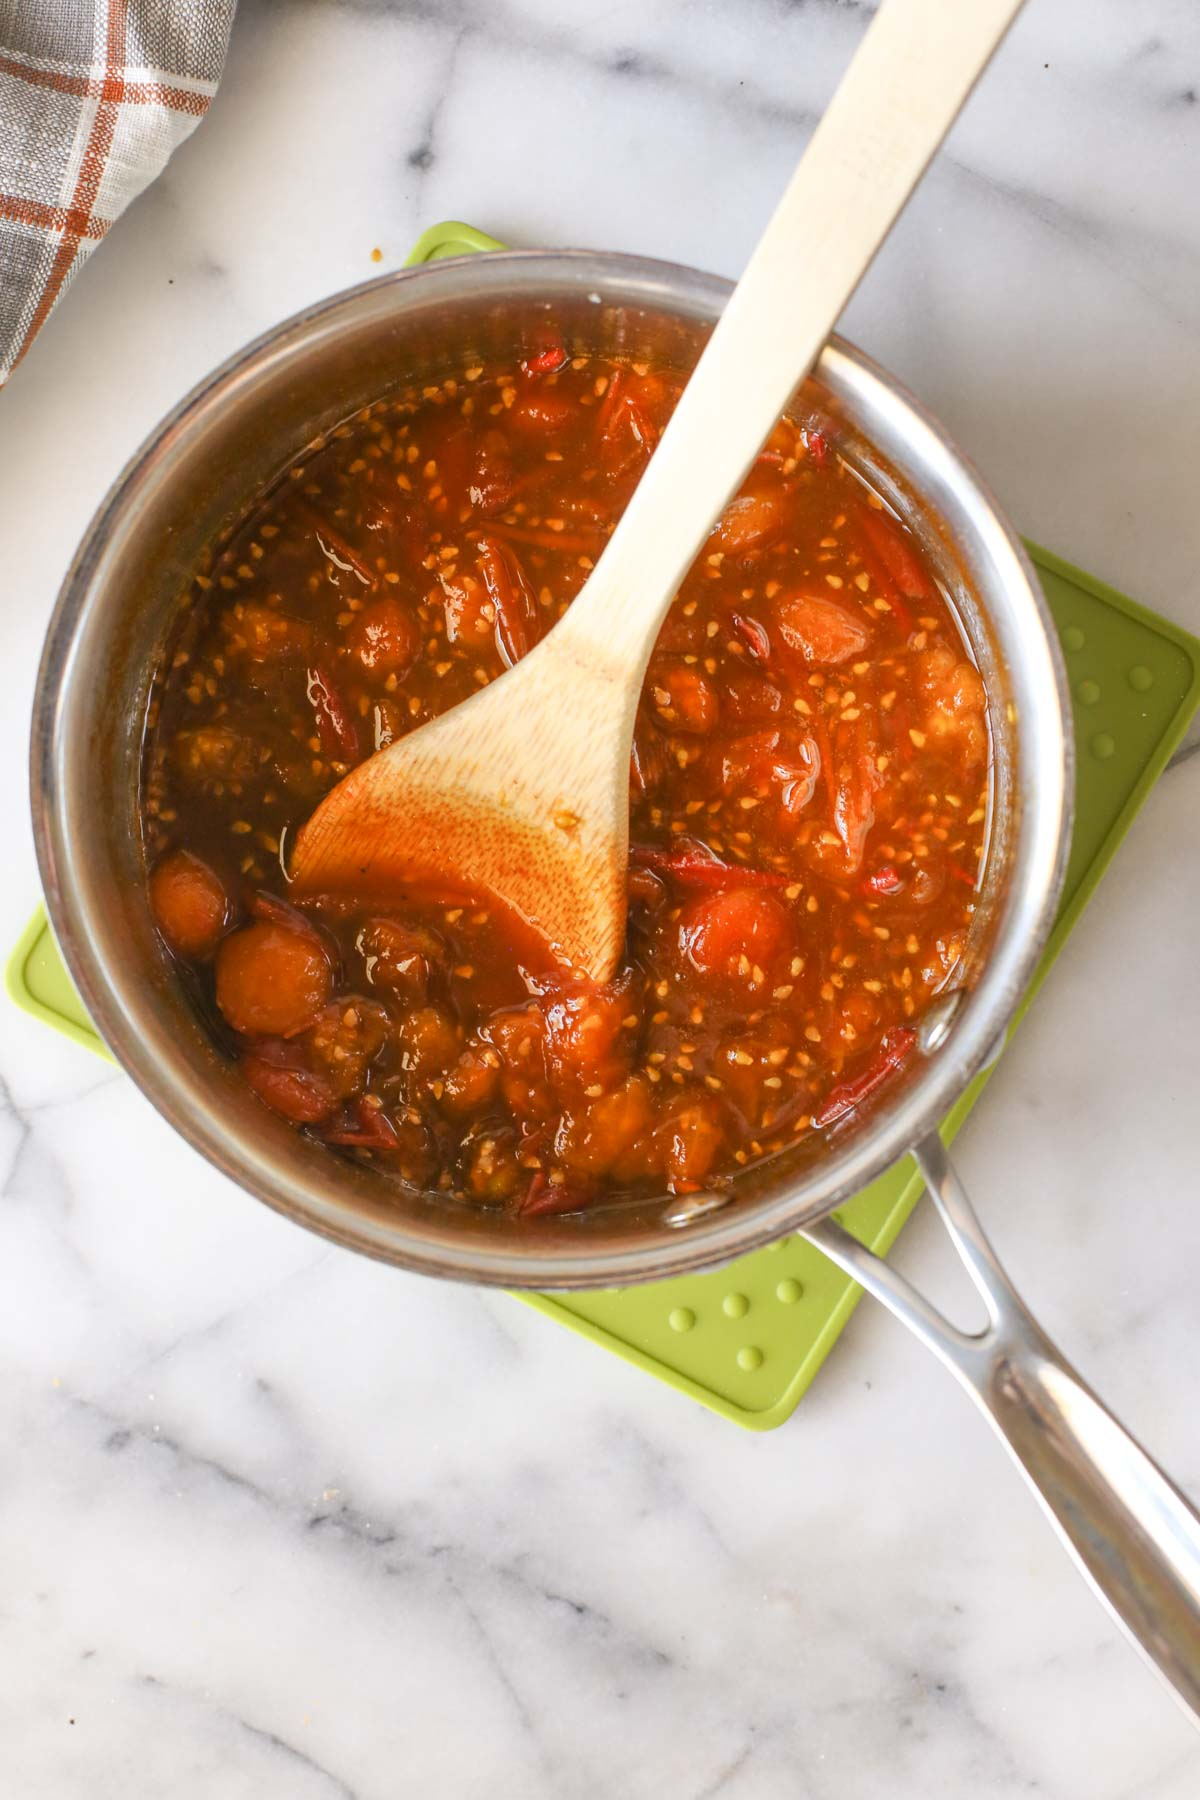 Overhead shot of Tomato Jam in a saucepan during the cooking process with a wooden spoon in it.